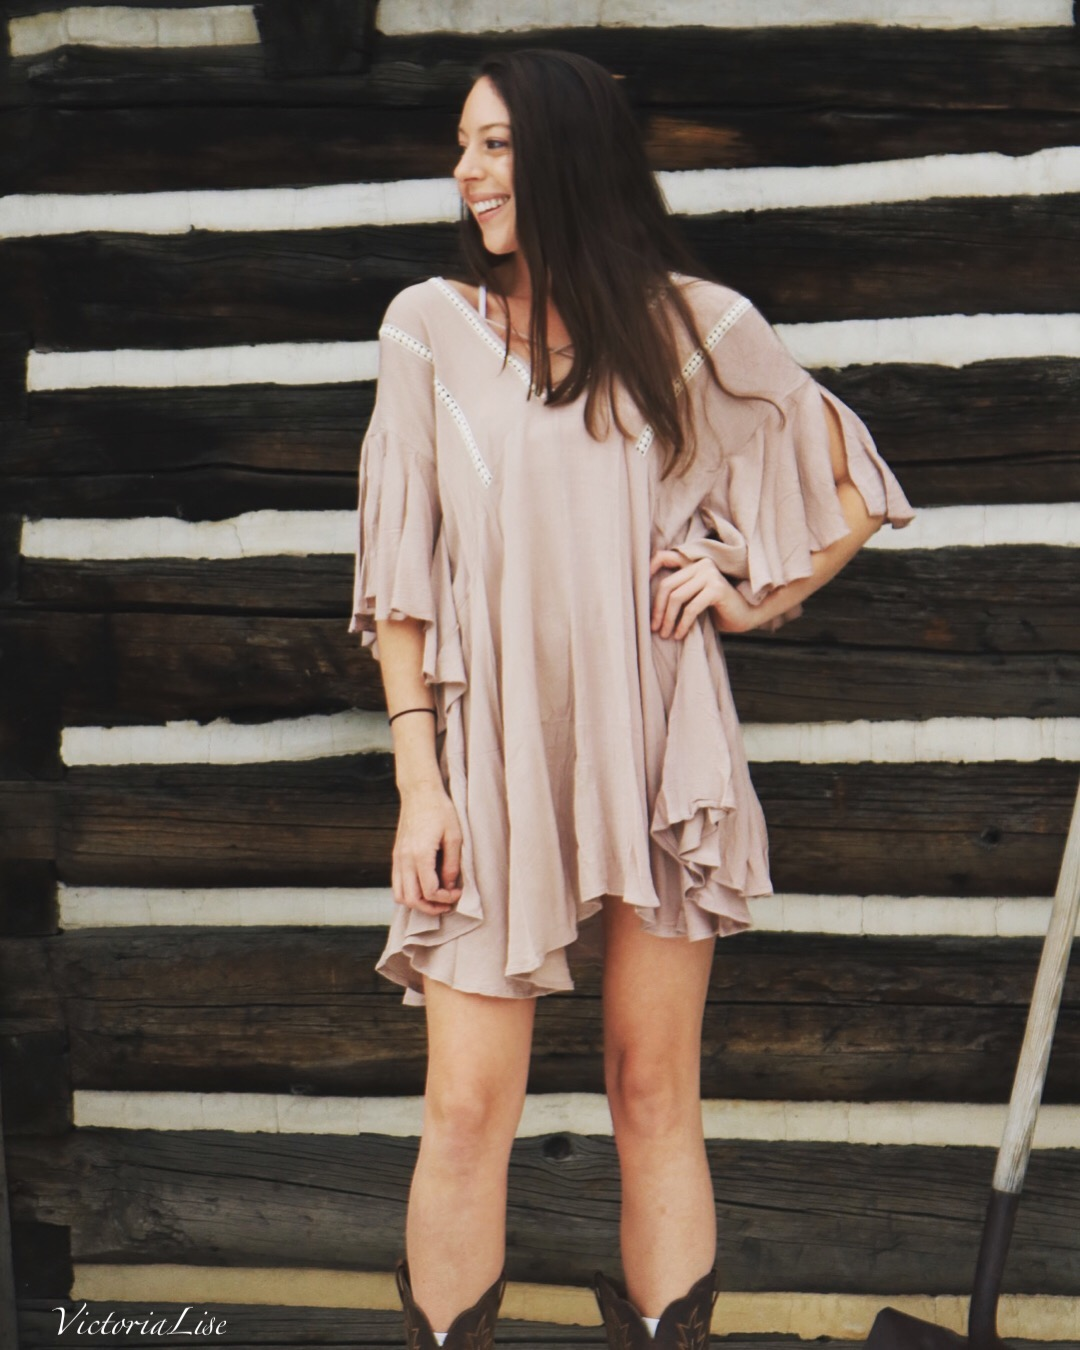 Victoria Lise wars ruffled, trendy dress in from of authentic Colorado cabin.